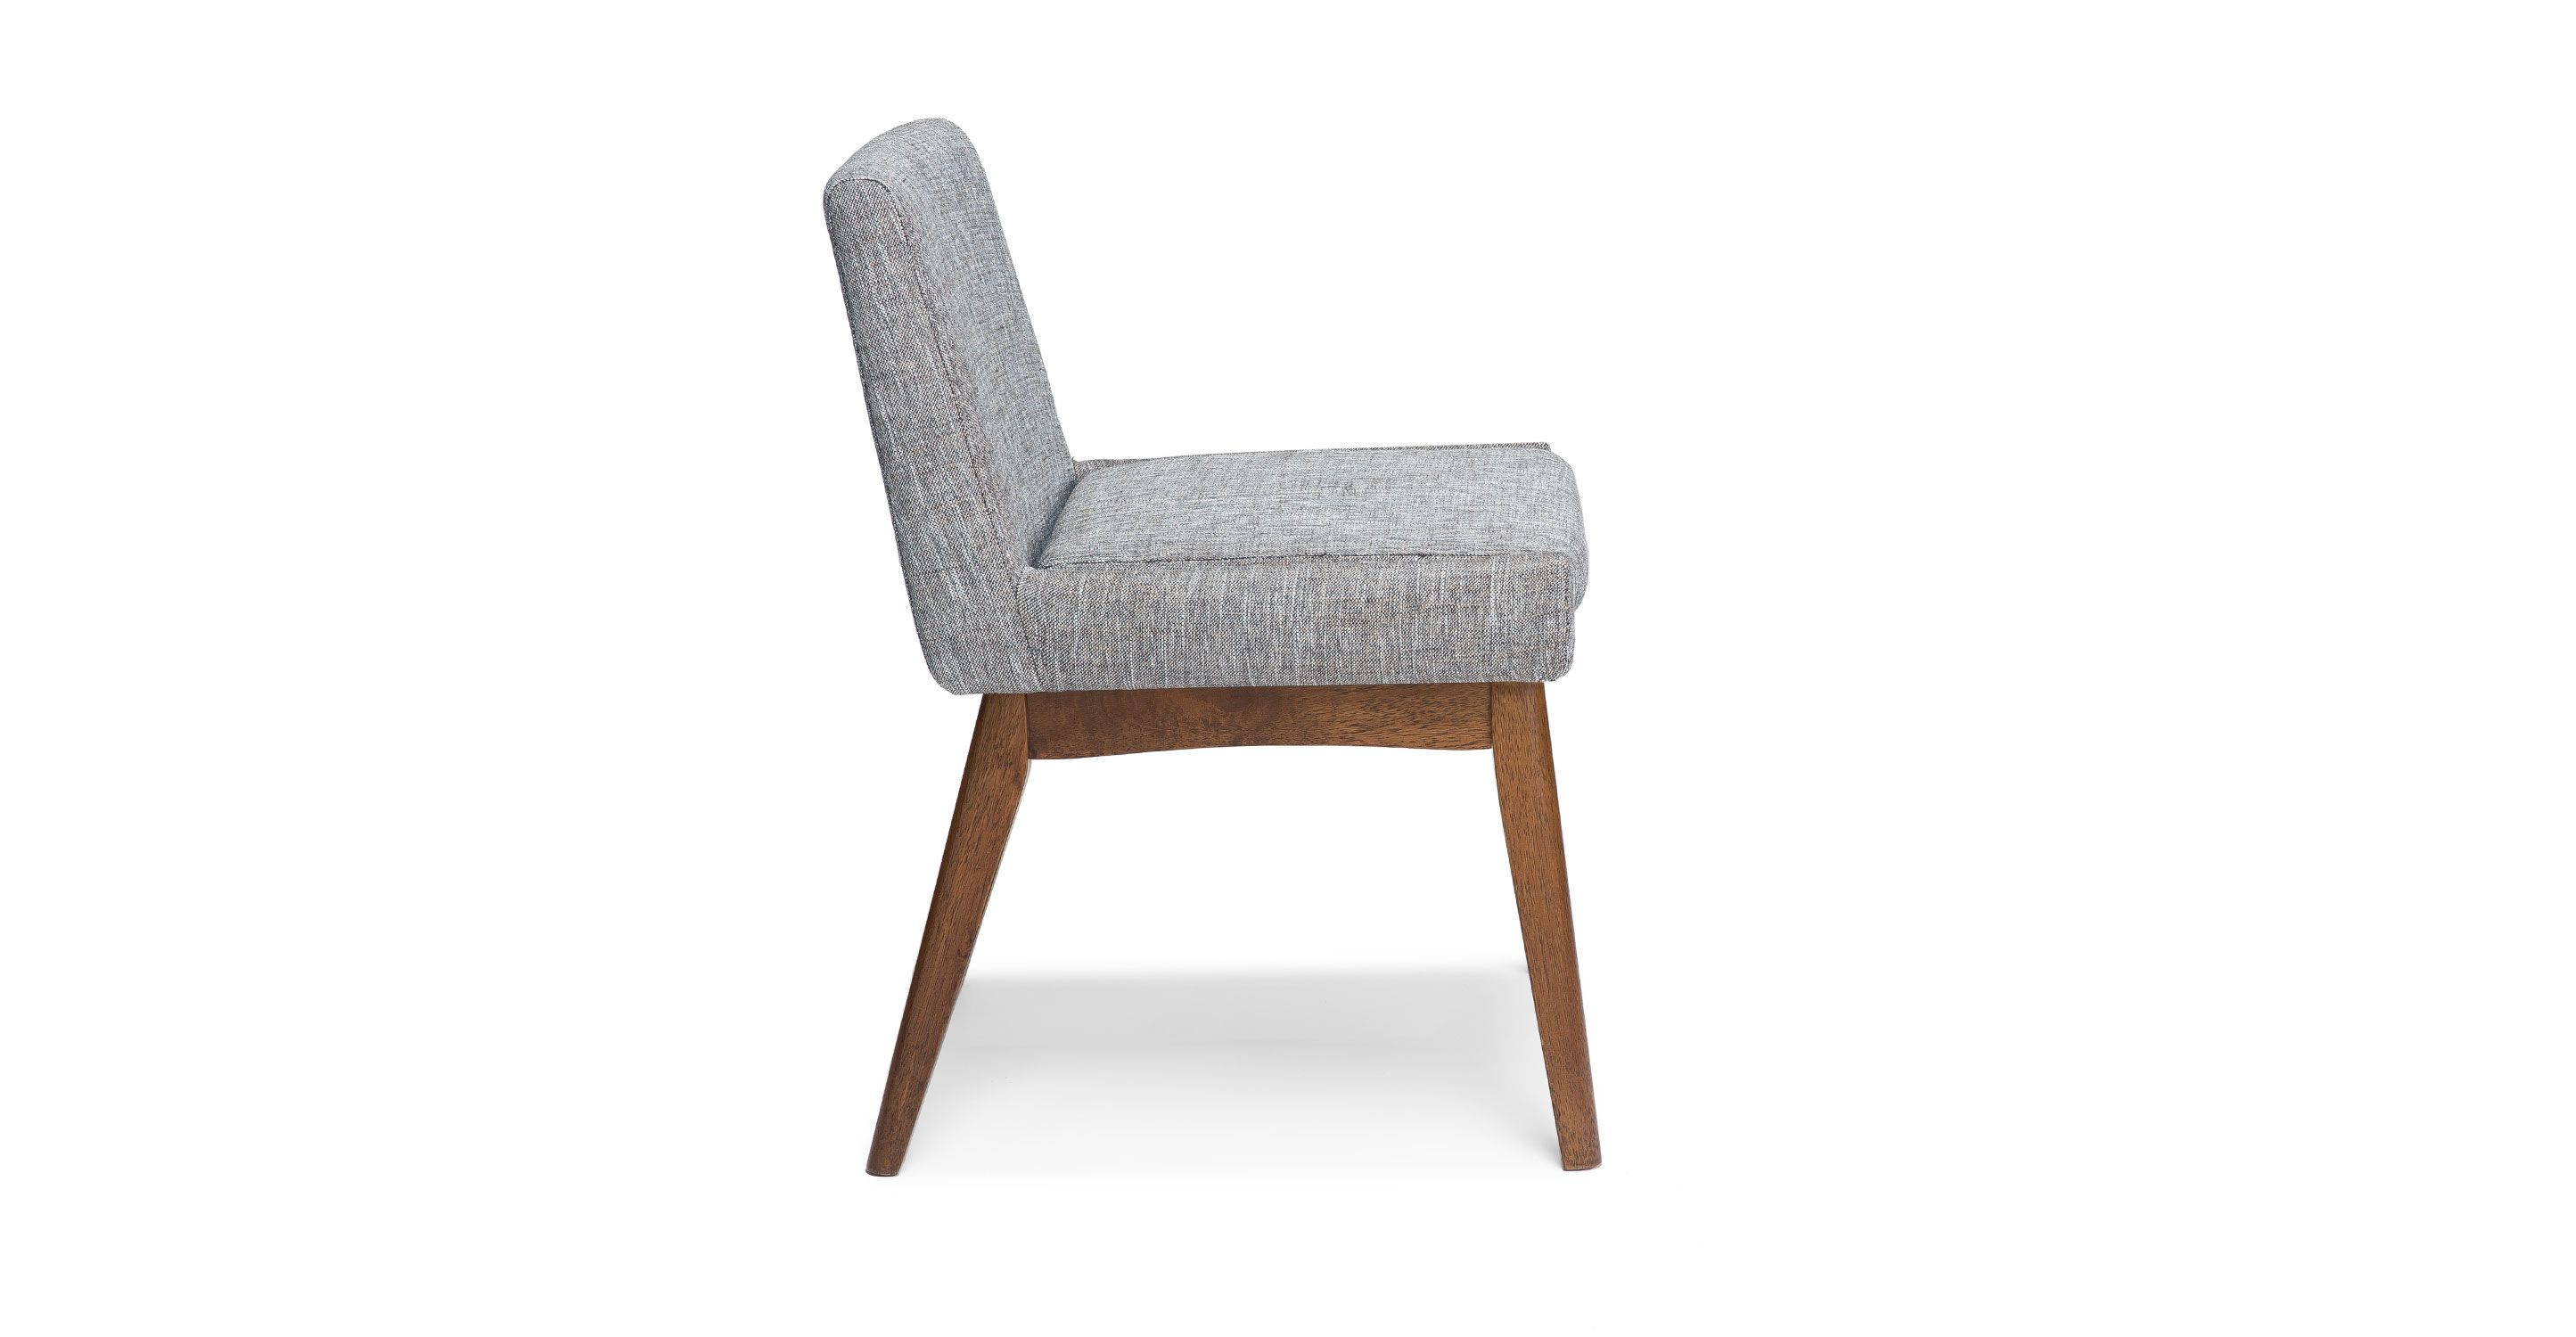 Remarkable 2X Gray Dining Chair In Brown Wood Upholstered Article Caraccident5 Cool Chair Designs And Ideas Caraccident5Info